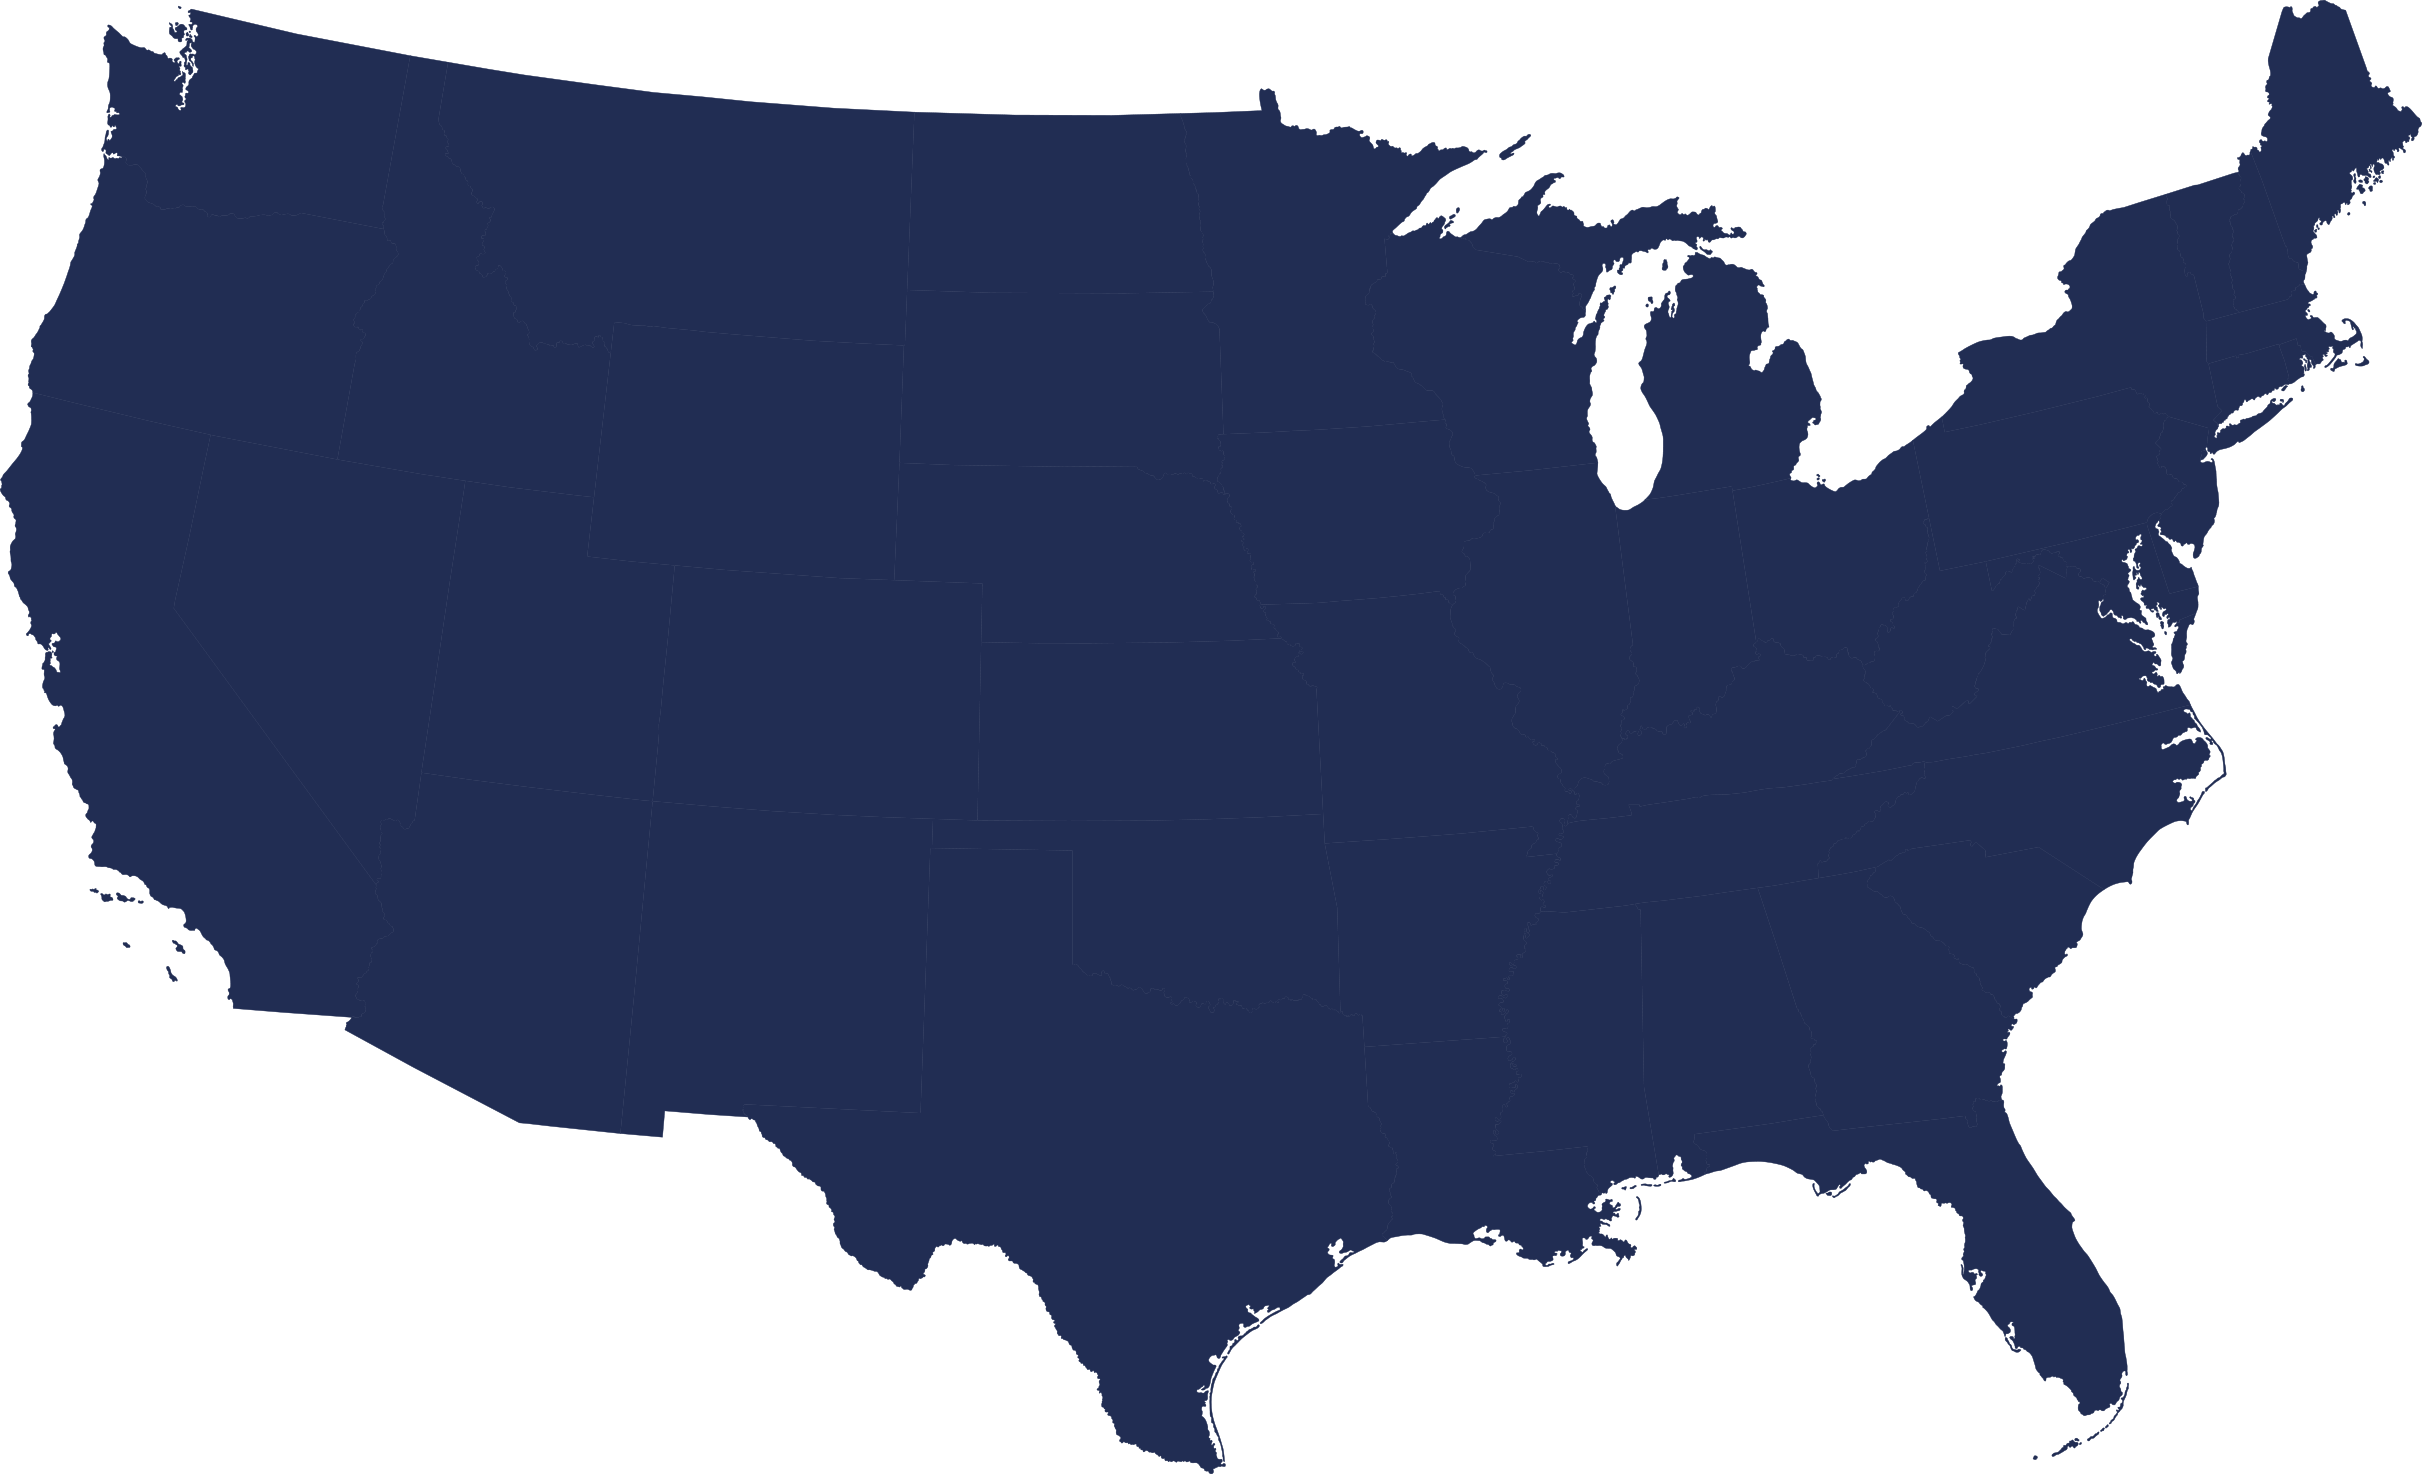 Maps Of Us Blue Map Detailed Map Maps Of Us Blue.